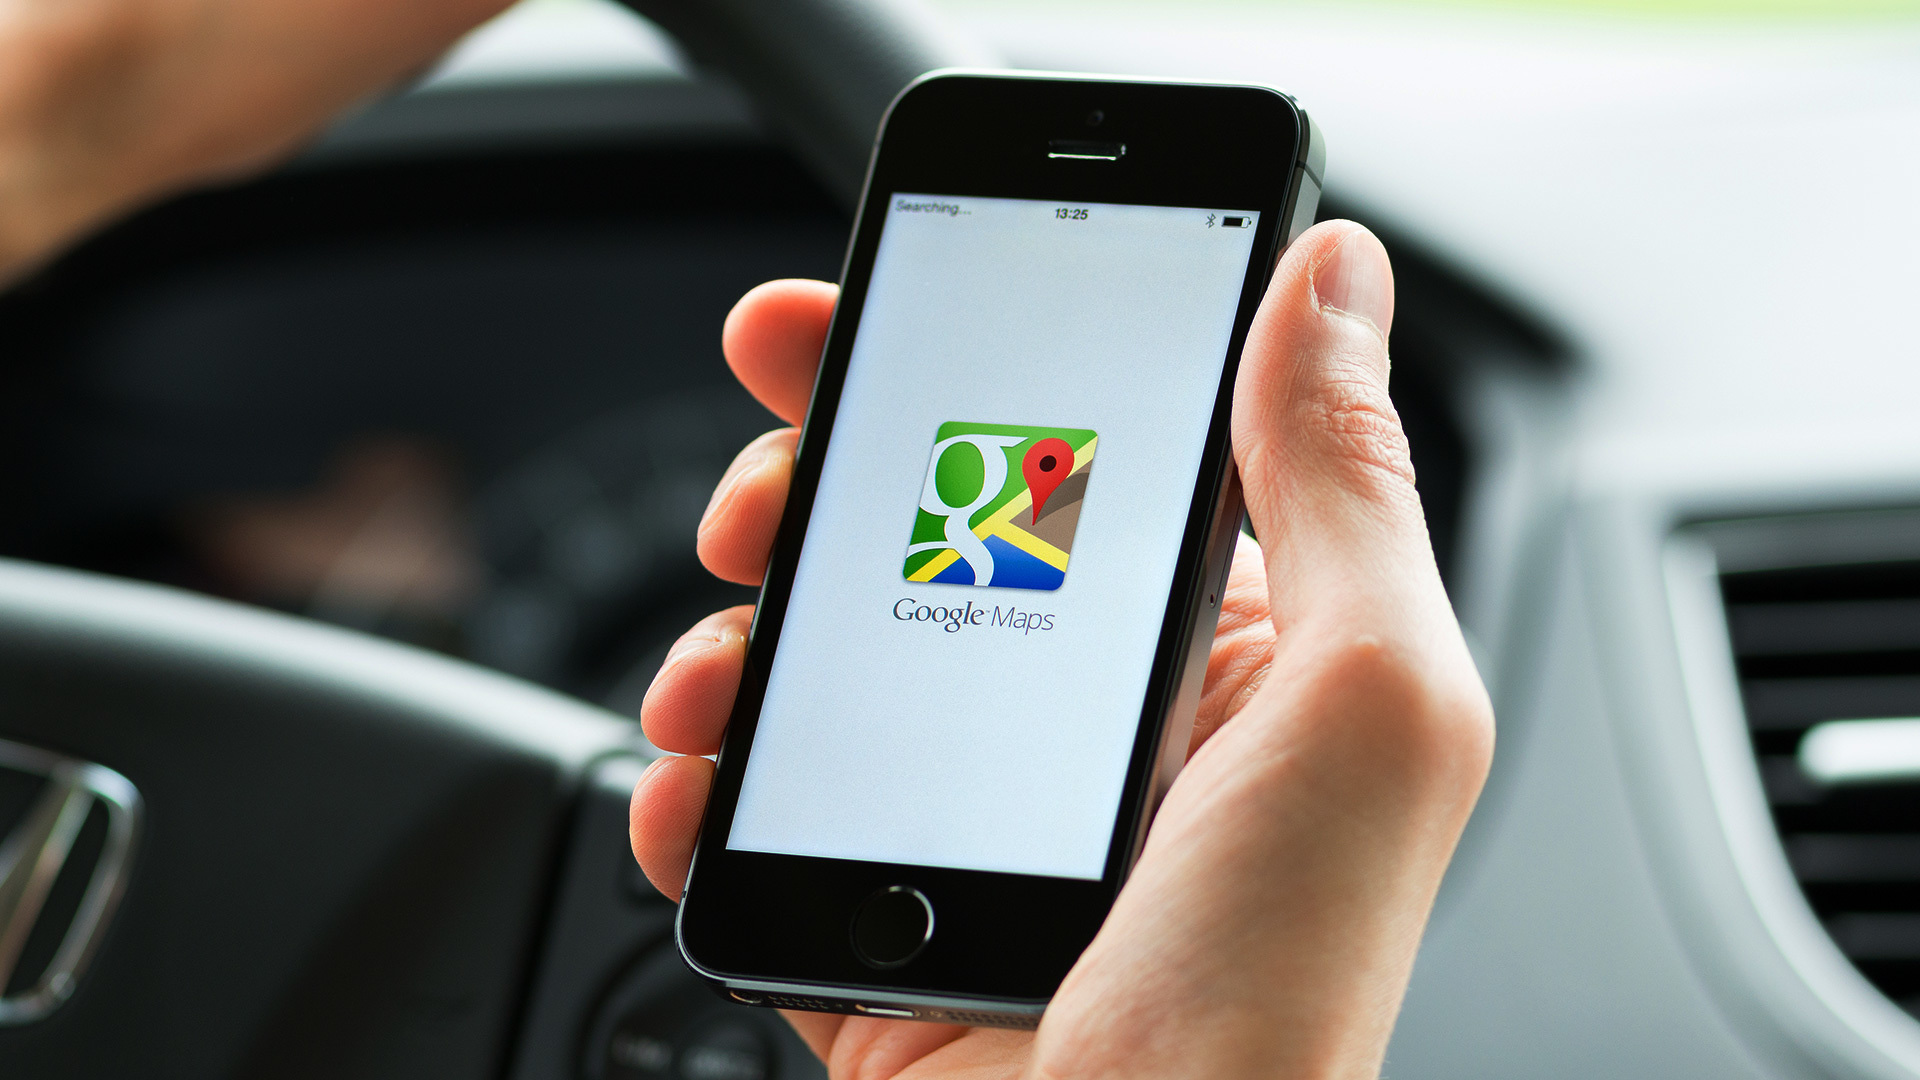 Google Maps could help you find parking someday